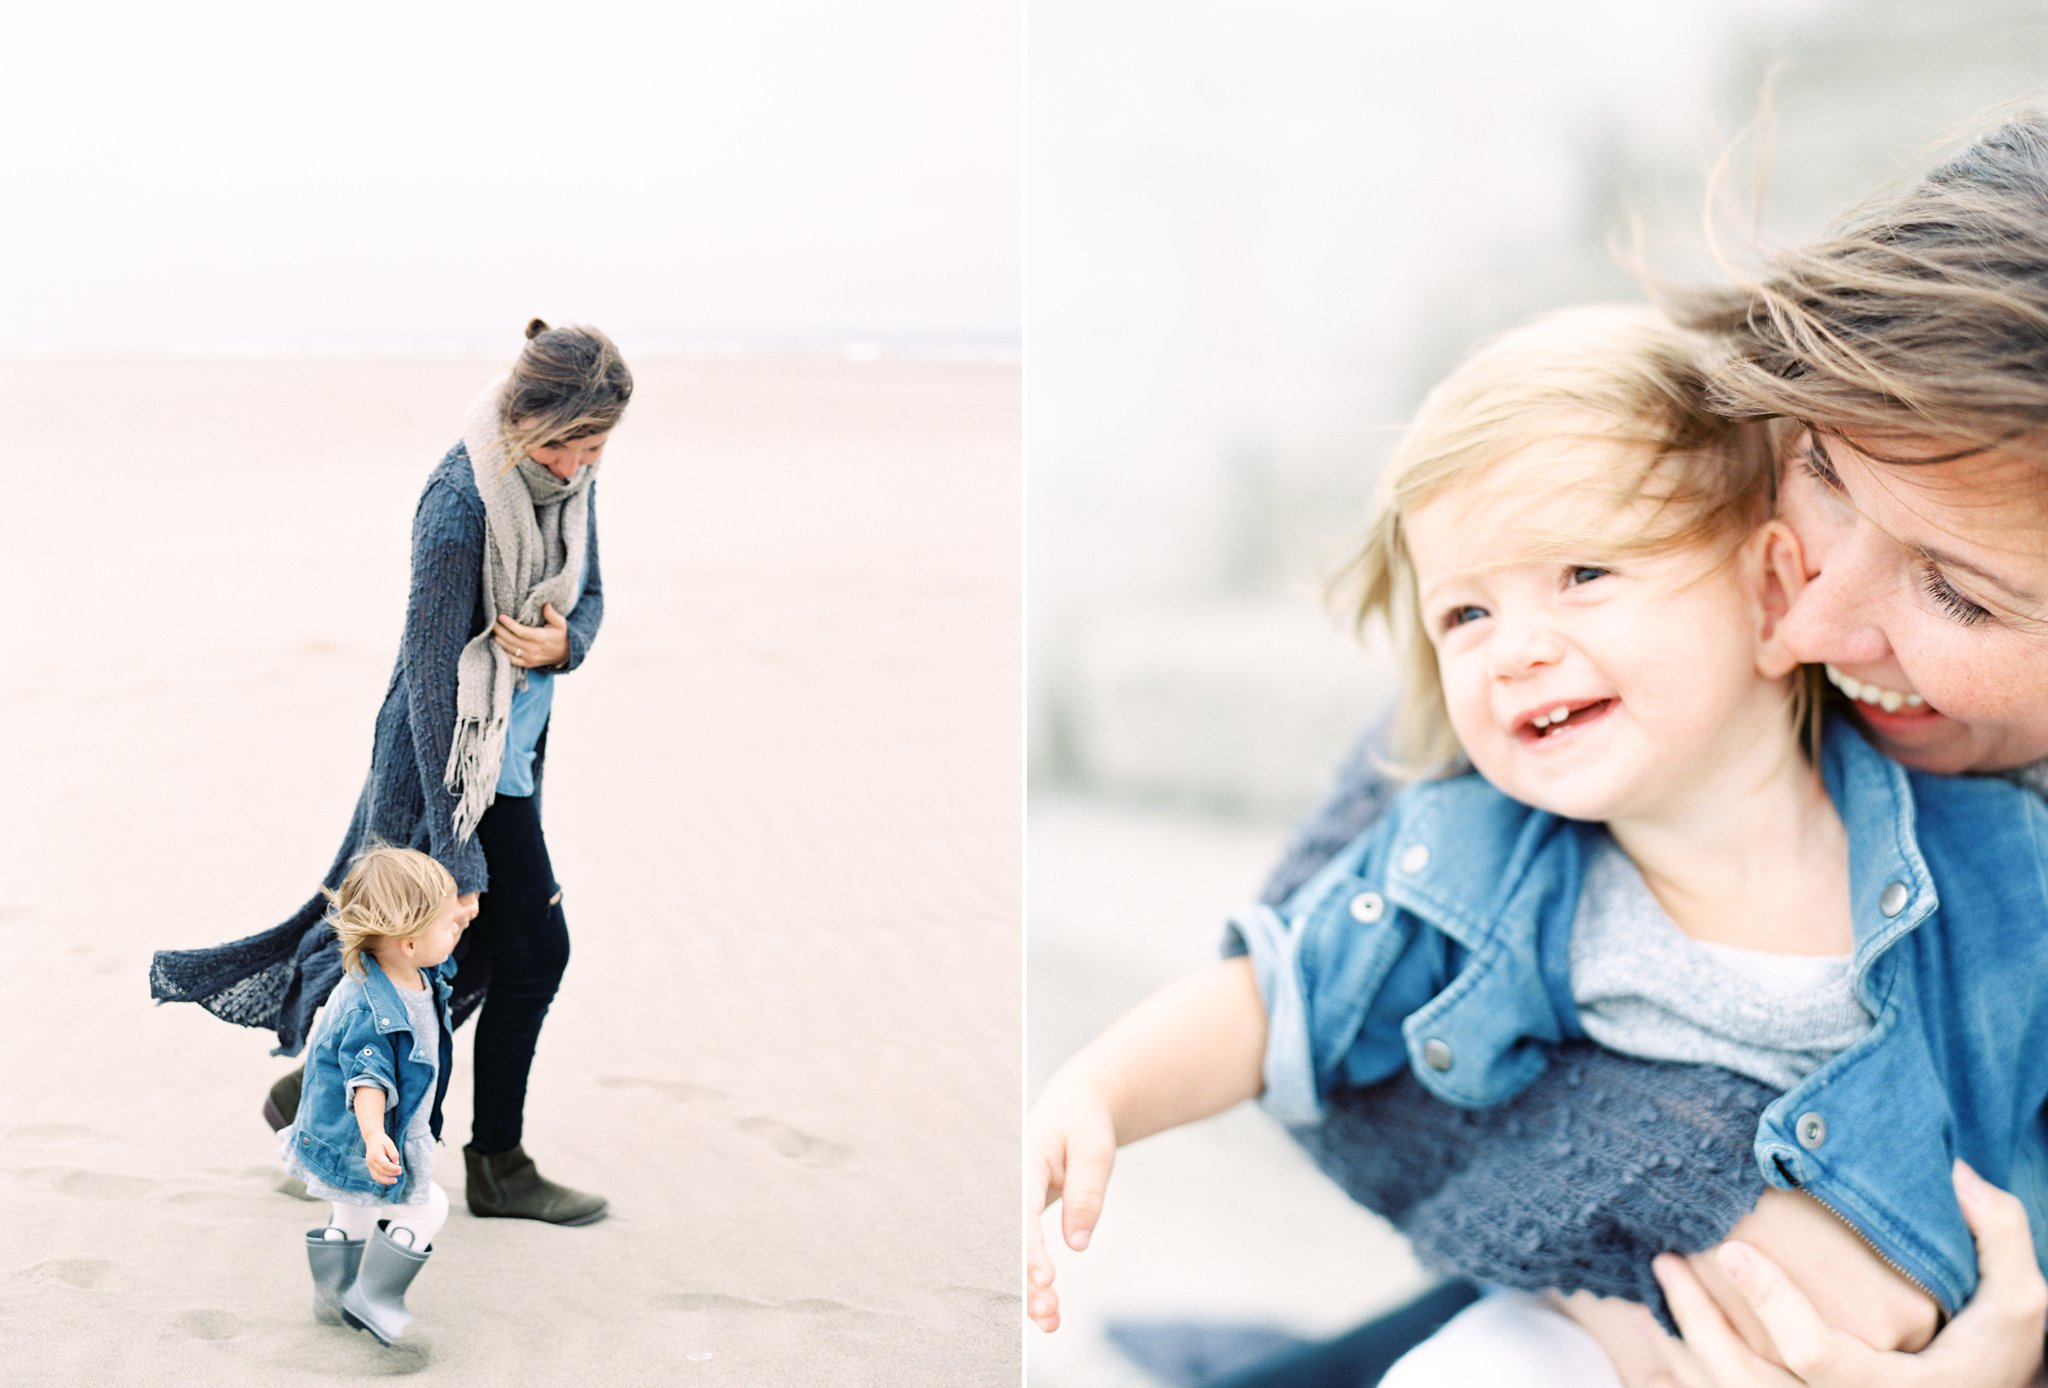 san francisco family session san francisco family photographer shannon griffin photography_0073.jpg